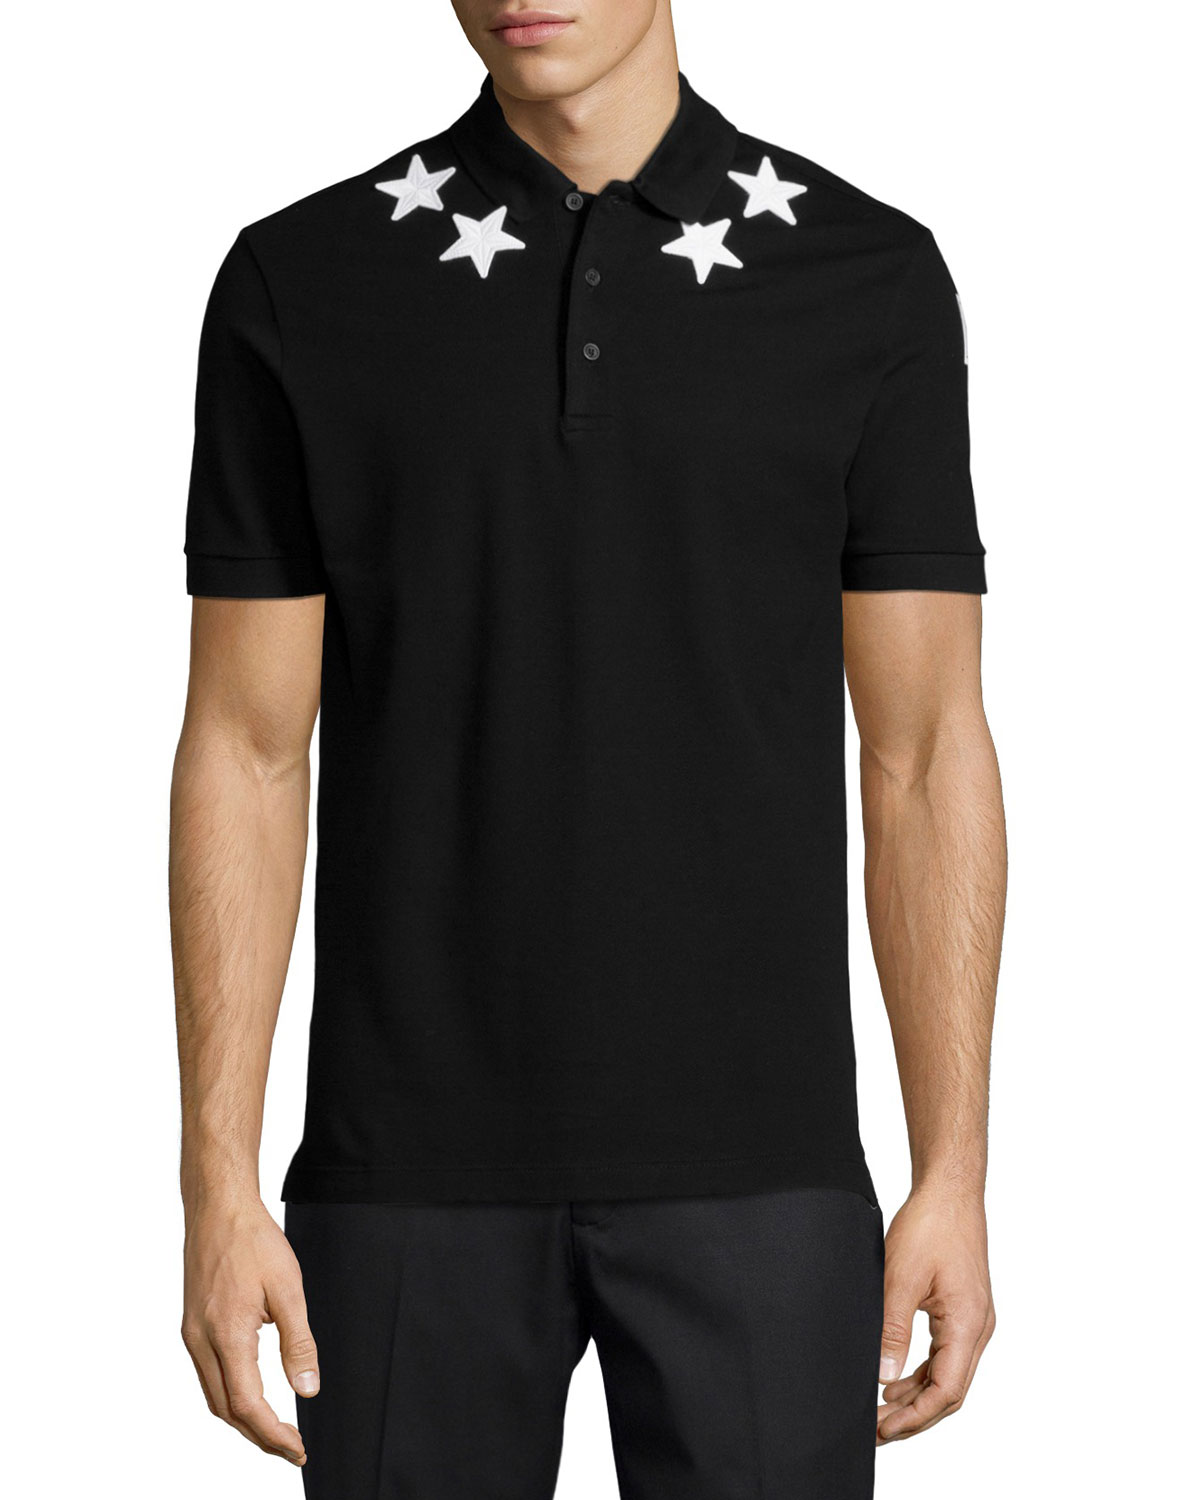 bf6f3fa5 Givenchy Star-Print Knit Polo Shirt, Black | Neiman Marcus